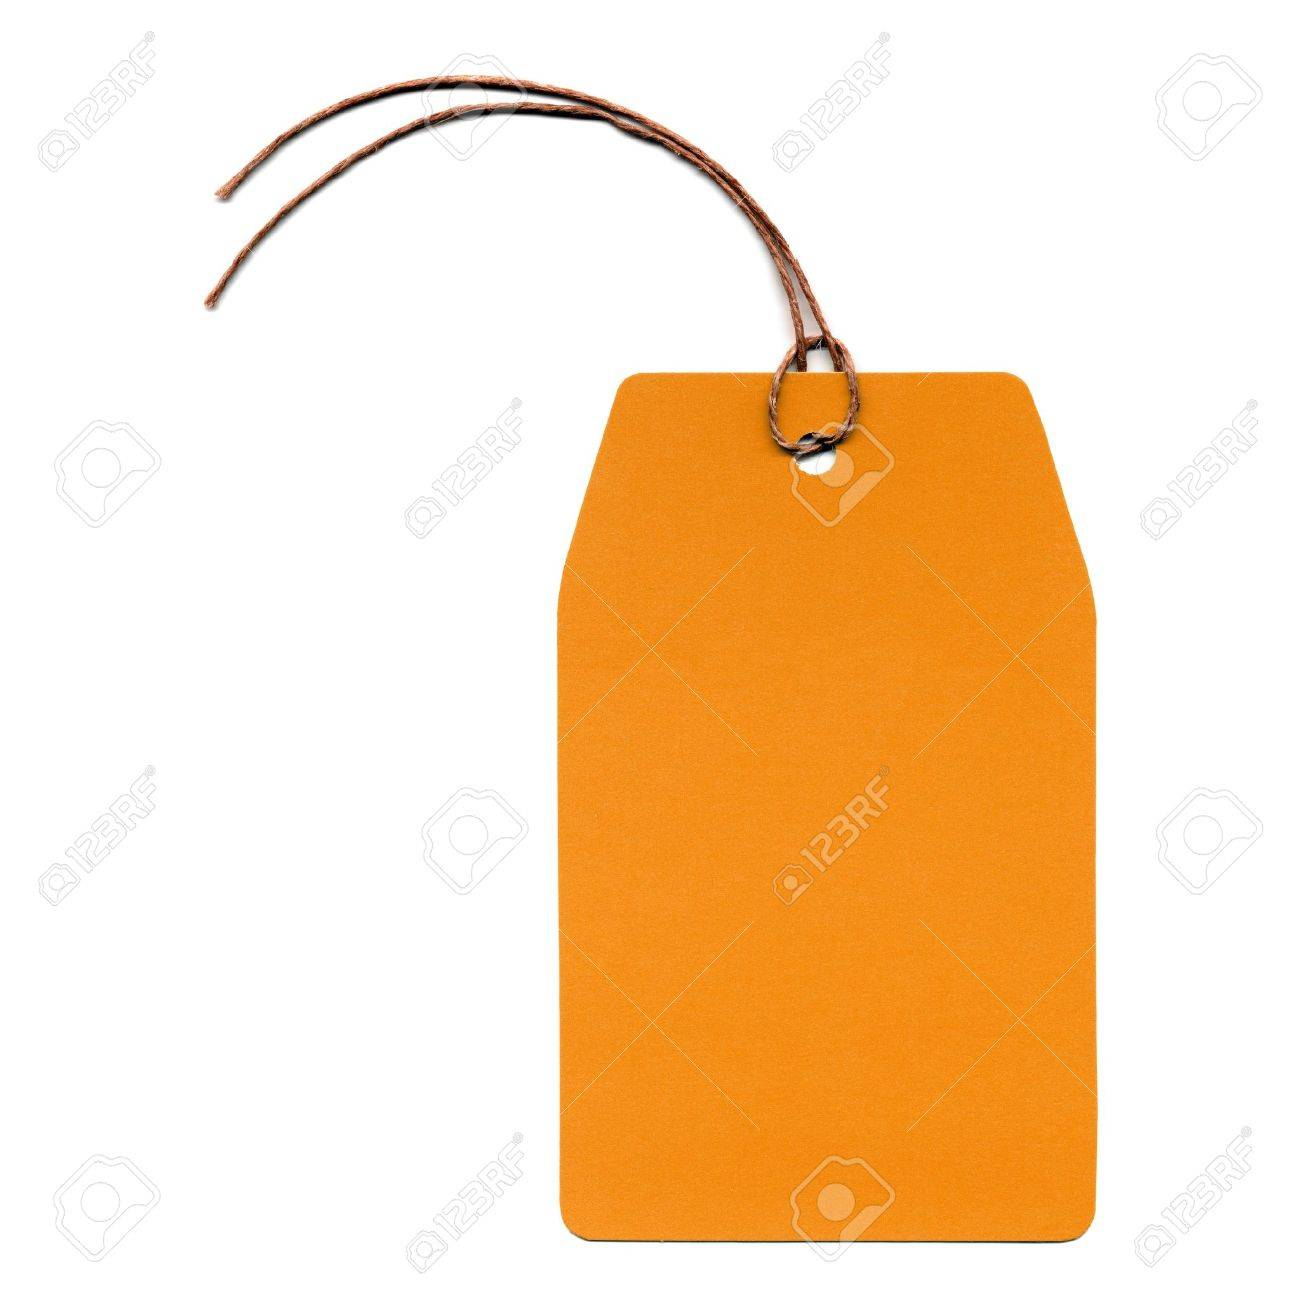 Price tag or address label with string Stock Photo - 4951060